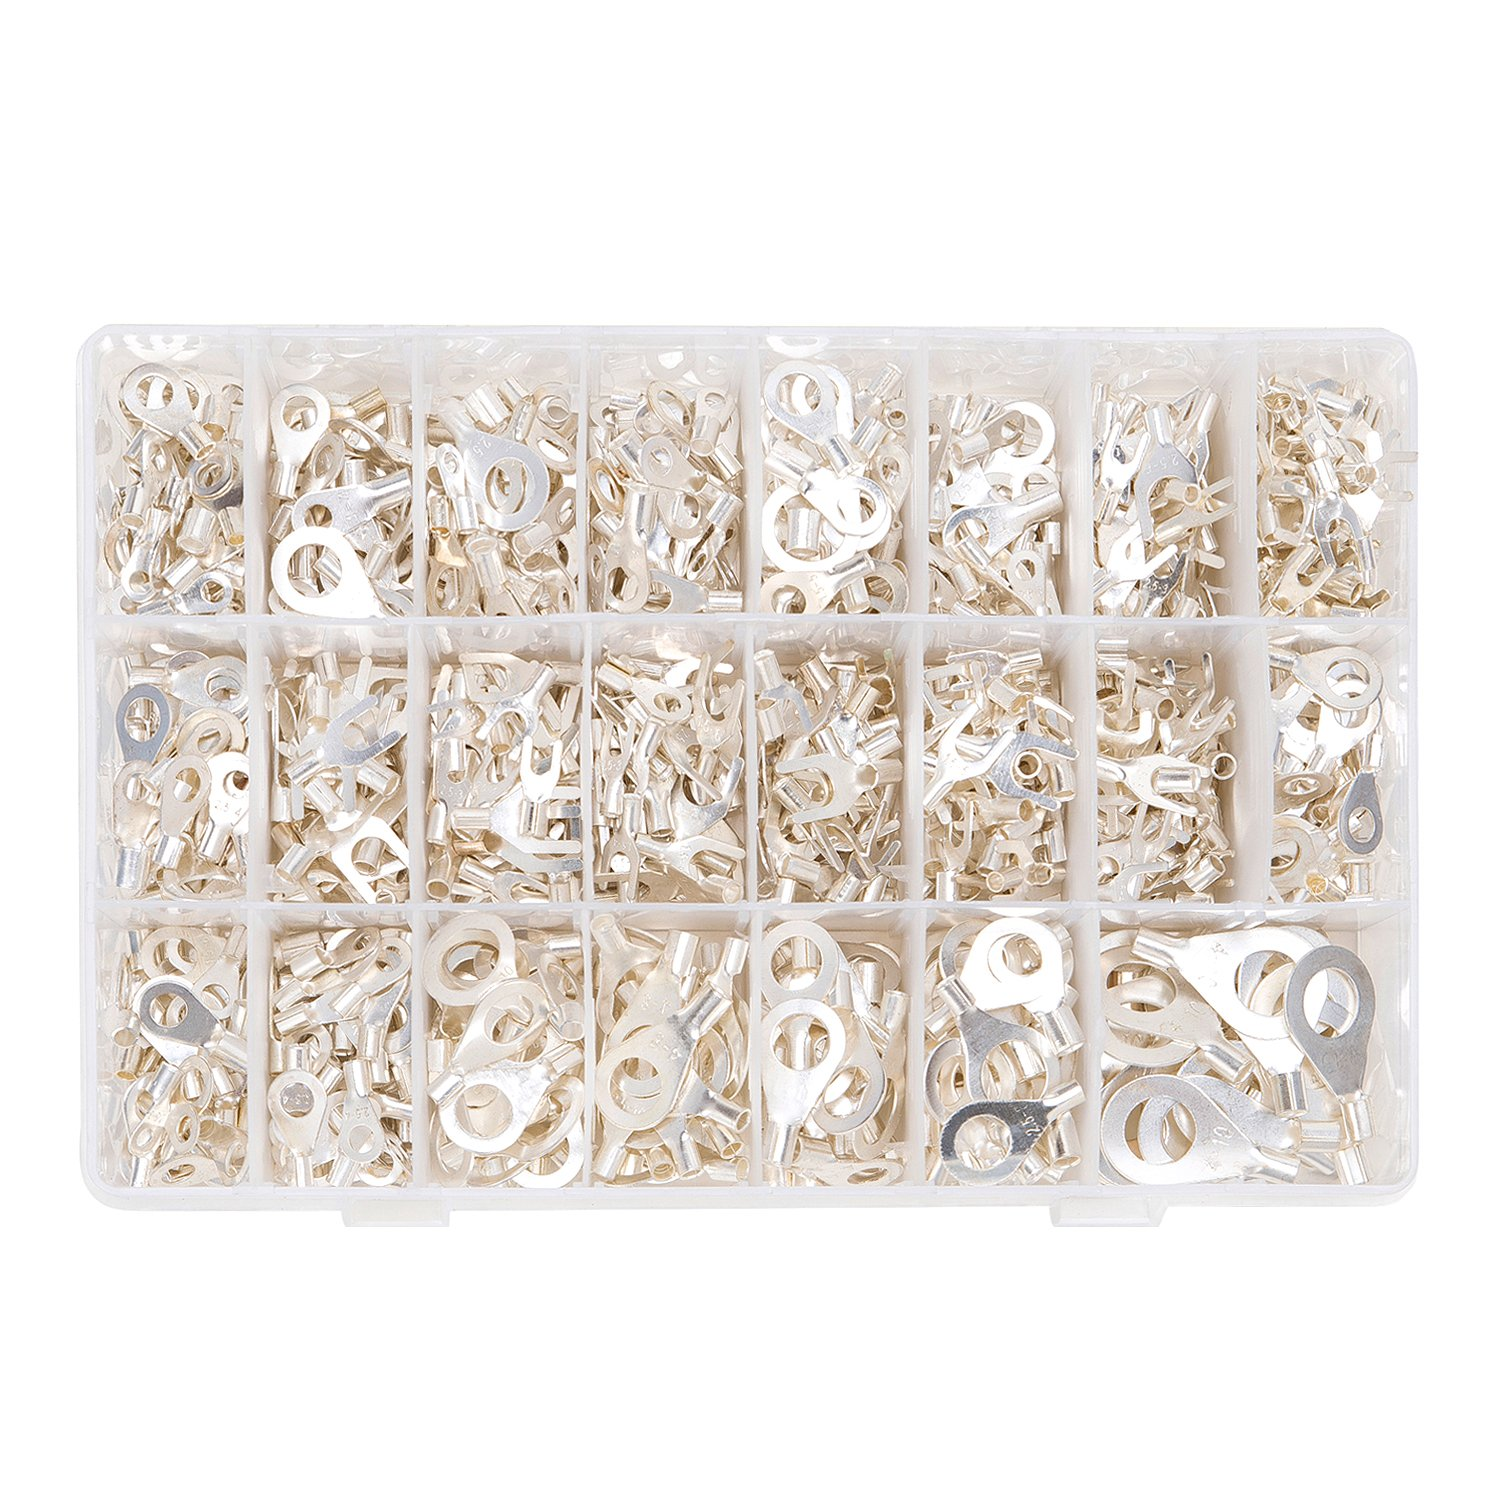 SwitchMe 1010 Pcs Wire Crimp Connectors Non-Insulated Tin-Plated Copper Wiring Ring Fork Terminals Assortment Kit